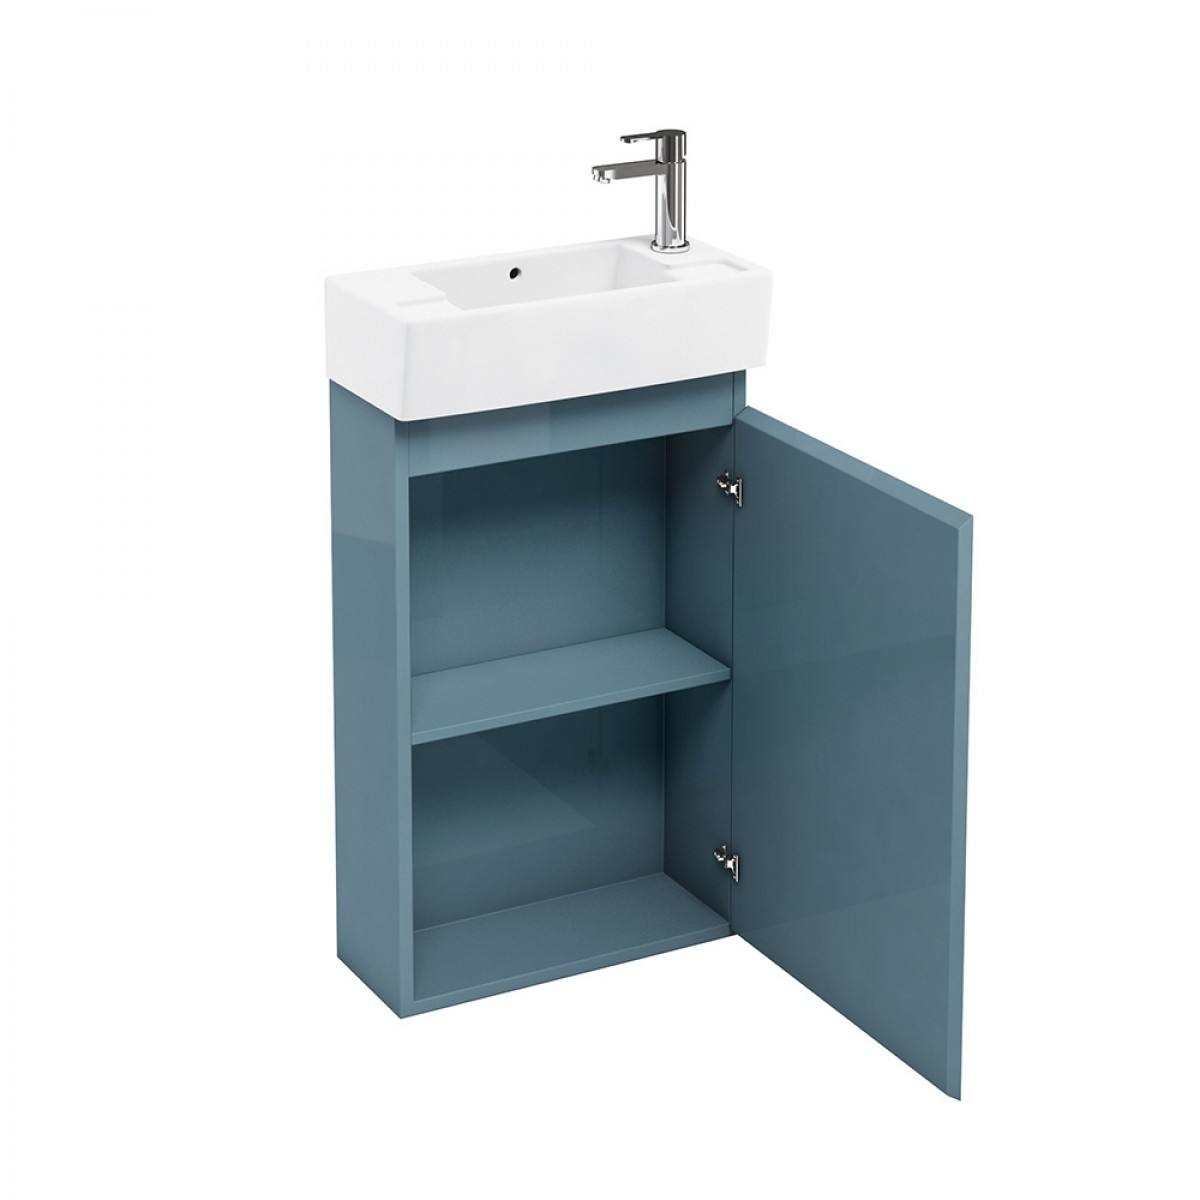 britton bathrooms compact 25cm depth floor mounted cloakroom vanity unit YPLKGFA